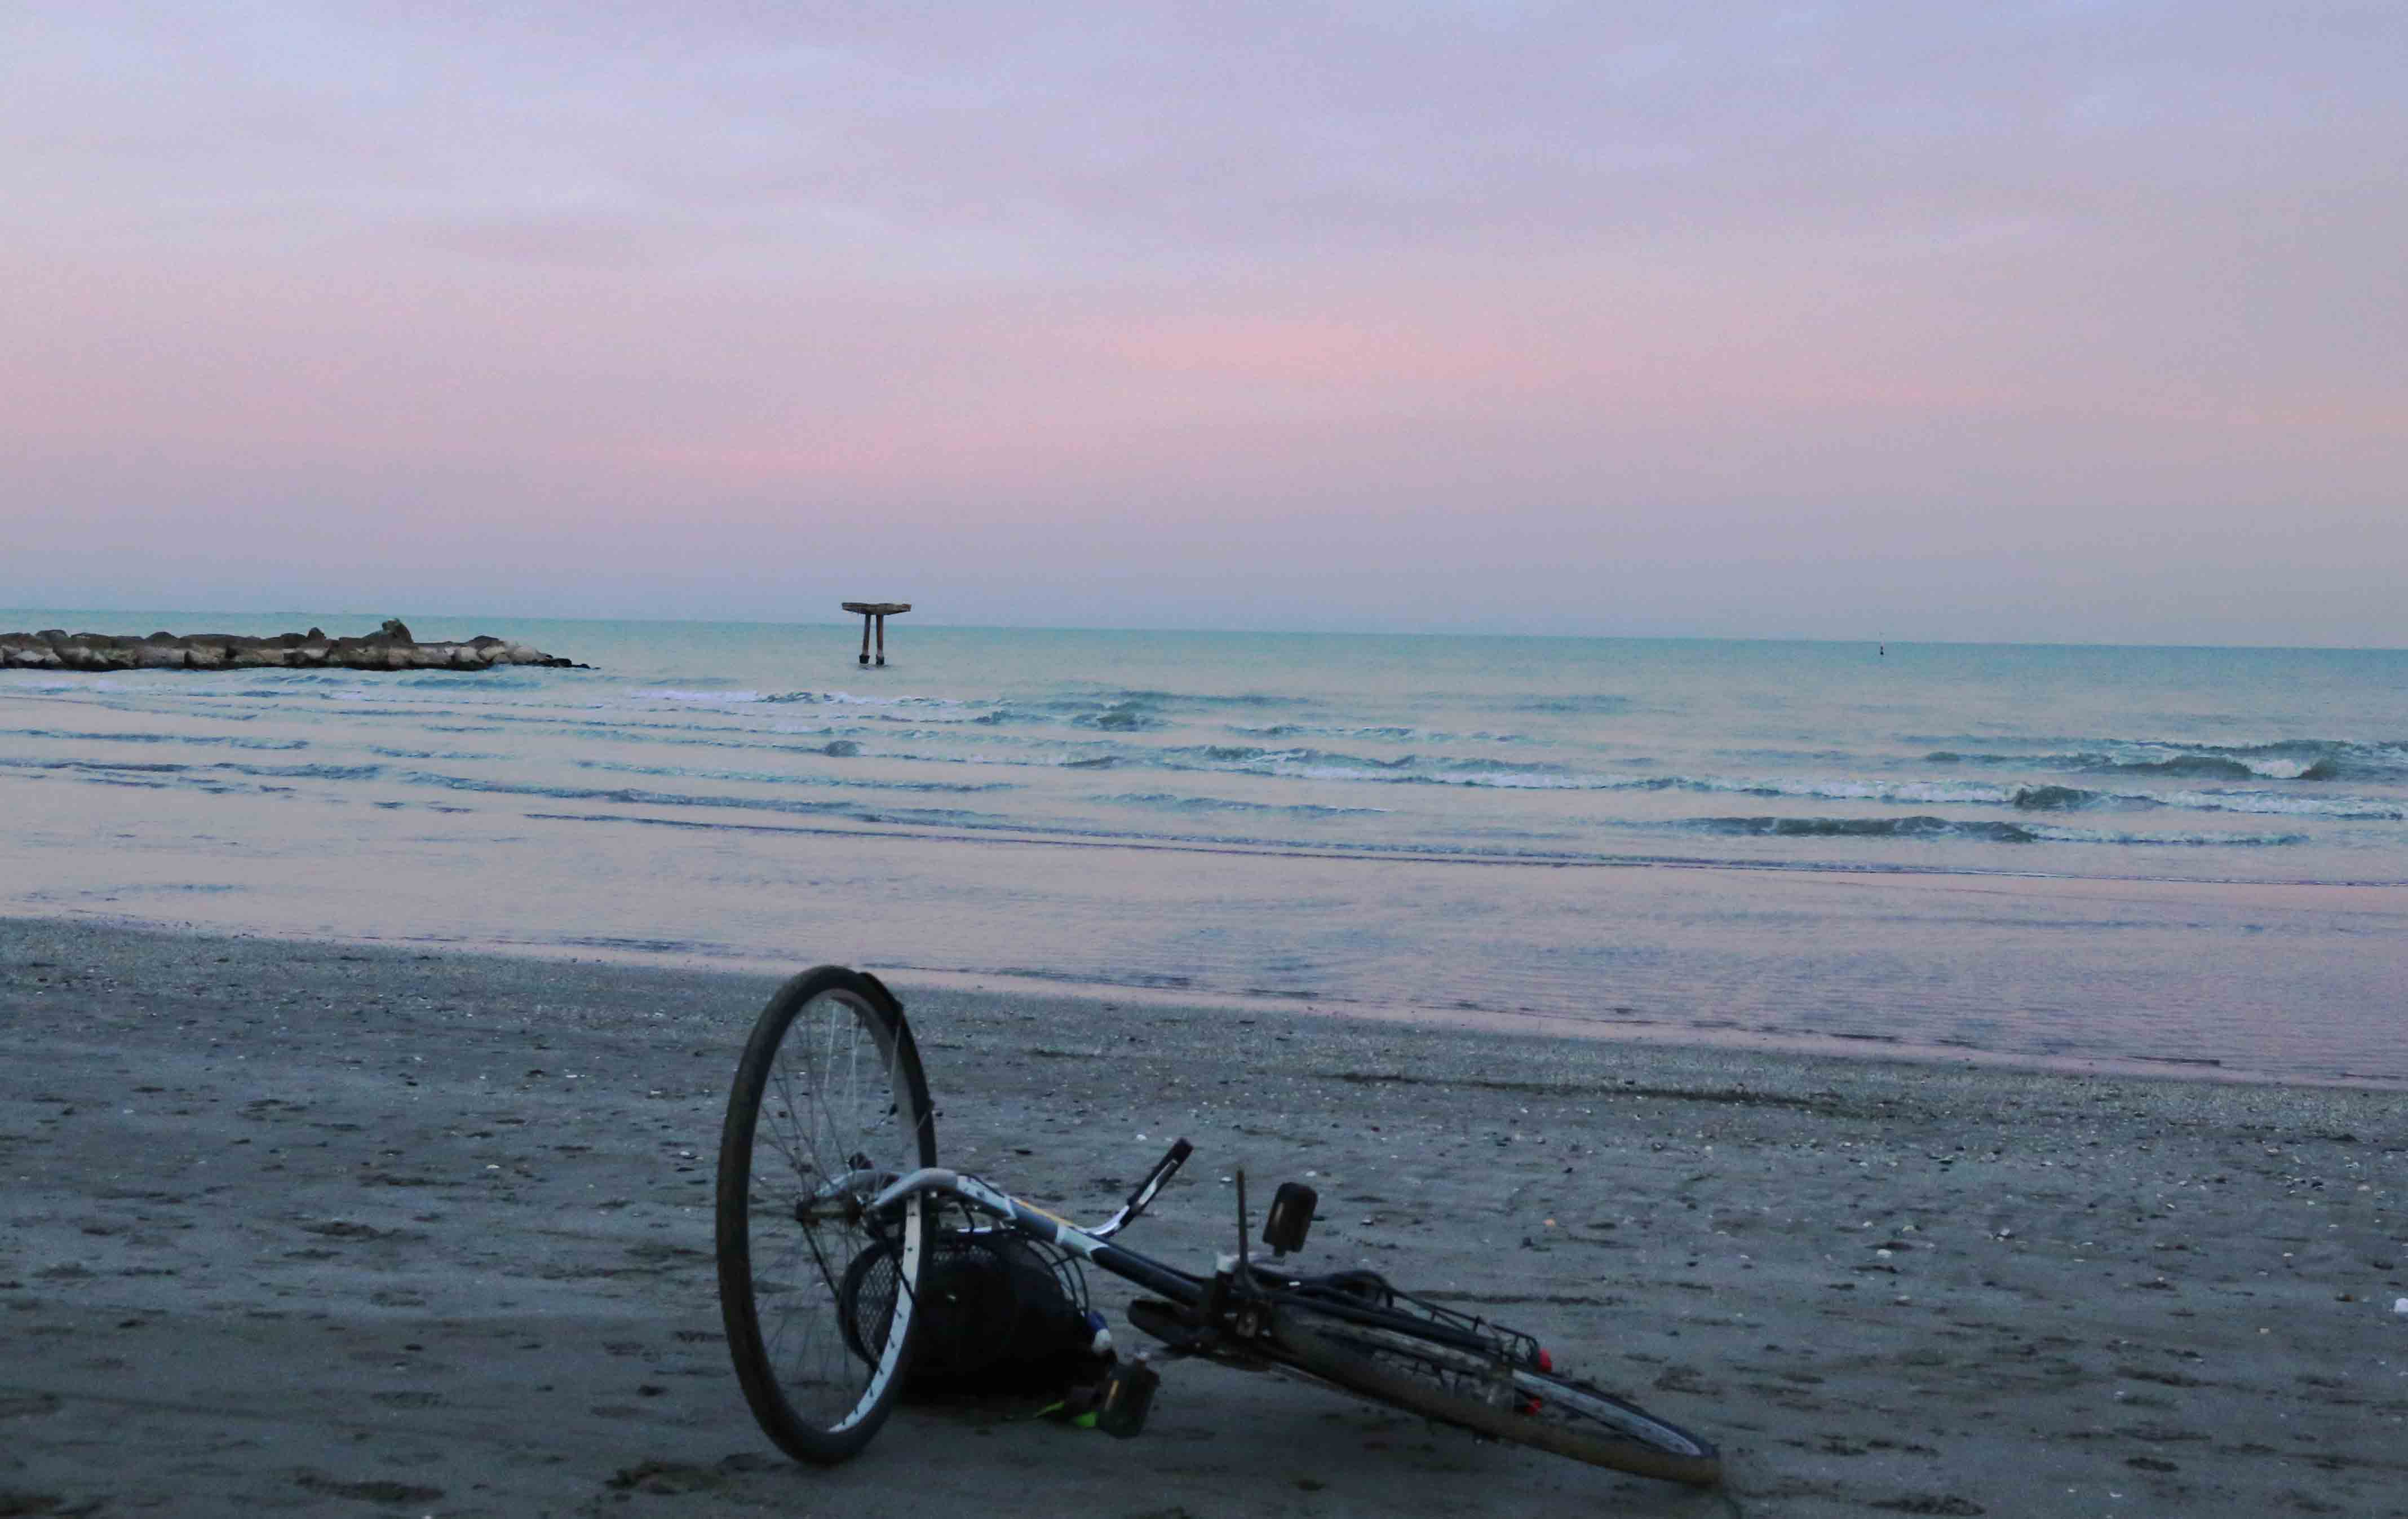 City Moment - A Fallen Bicycle on Thomas Mann's Beach, Venice